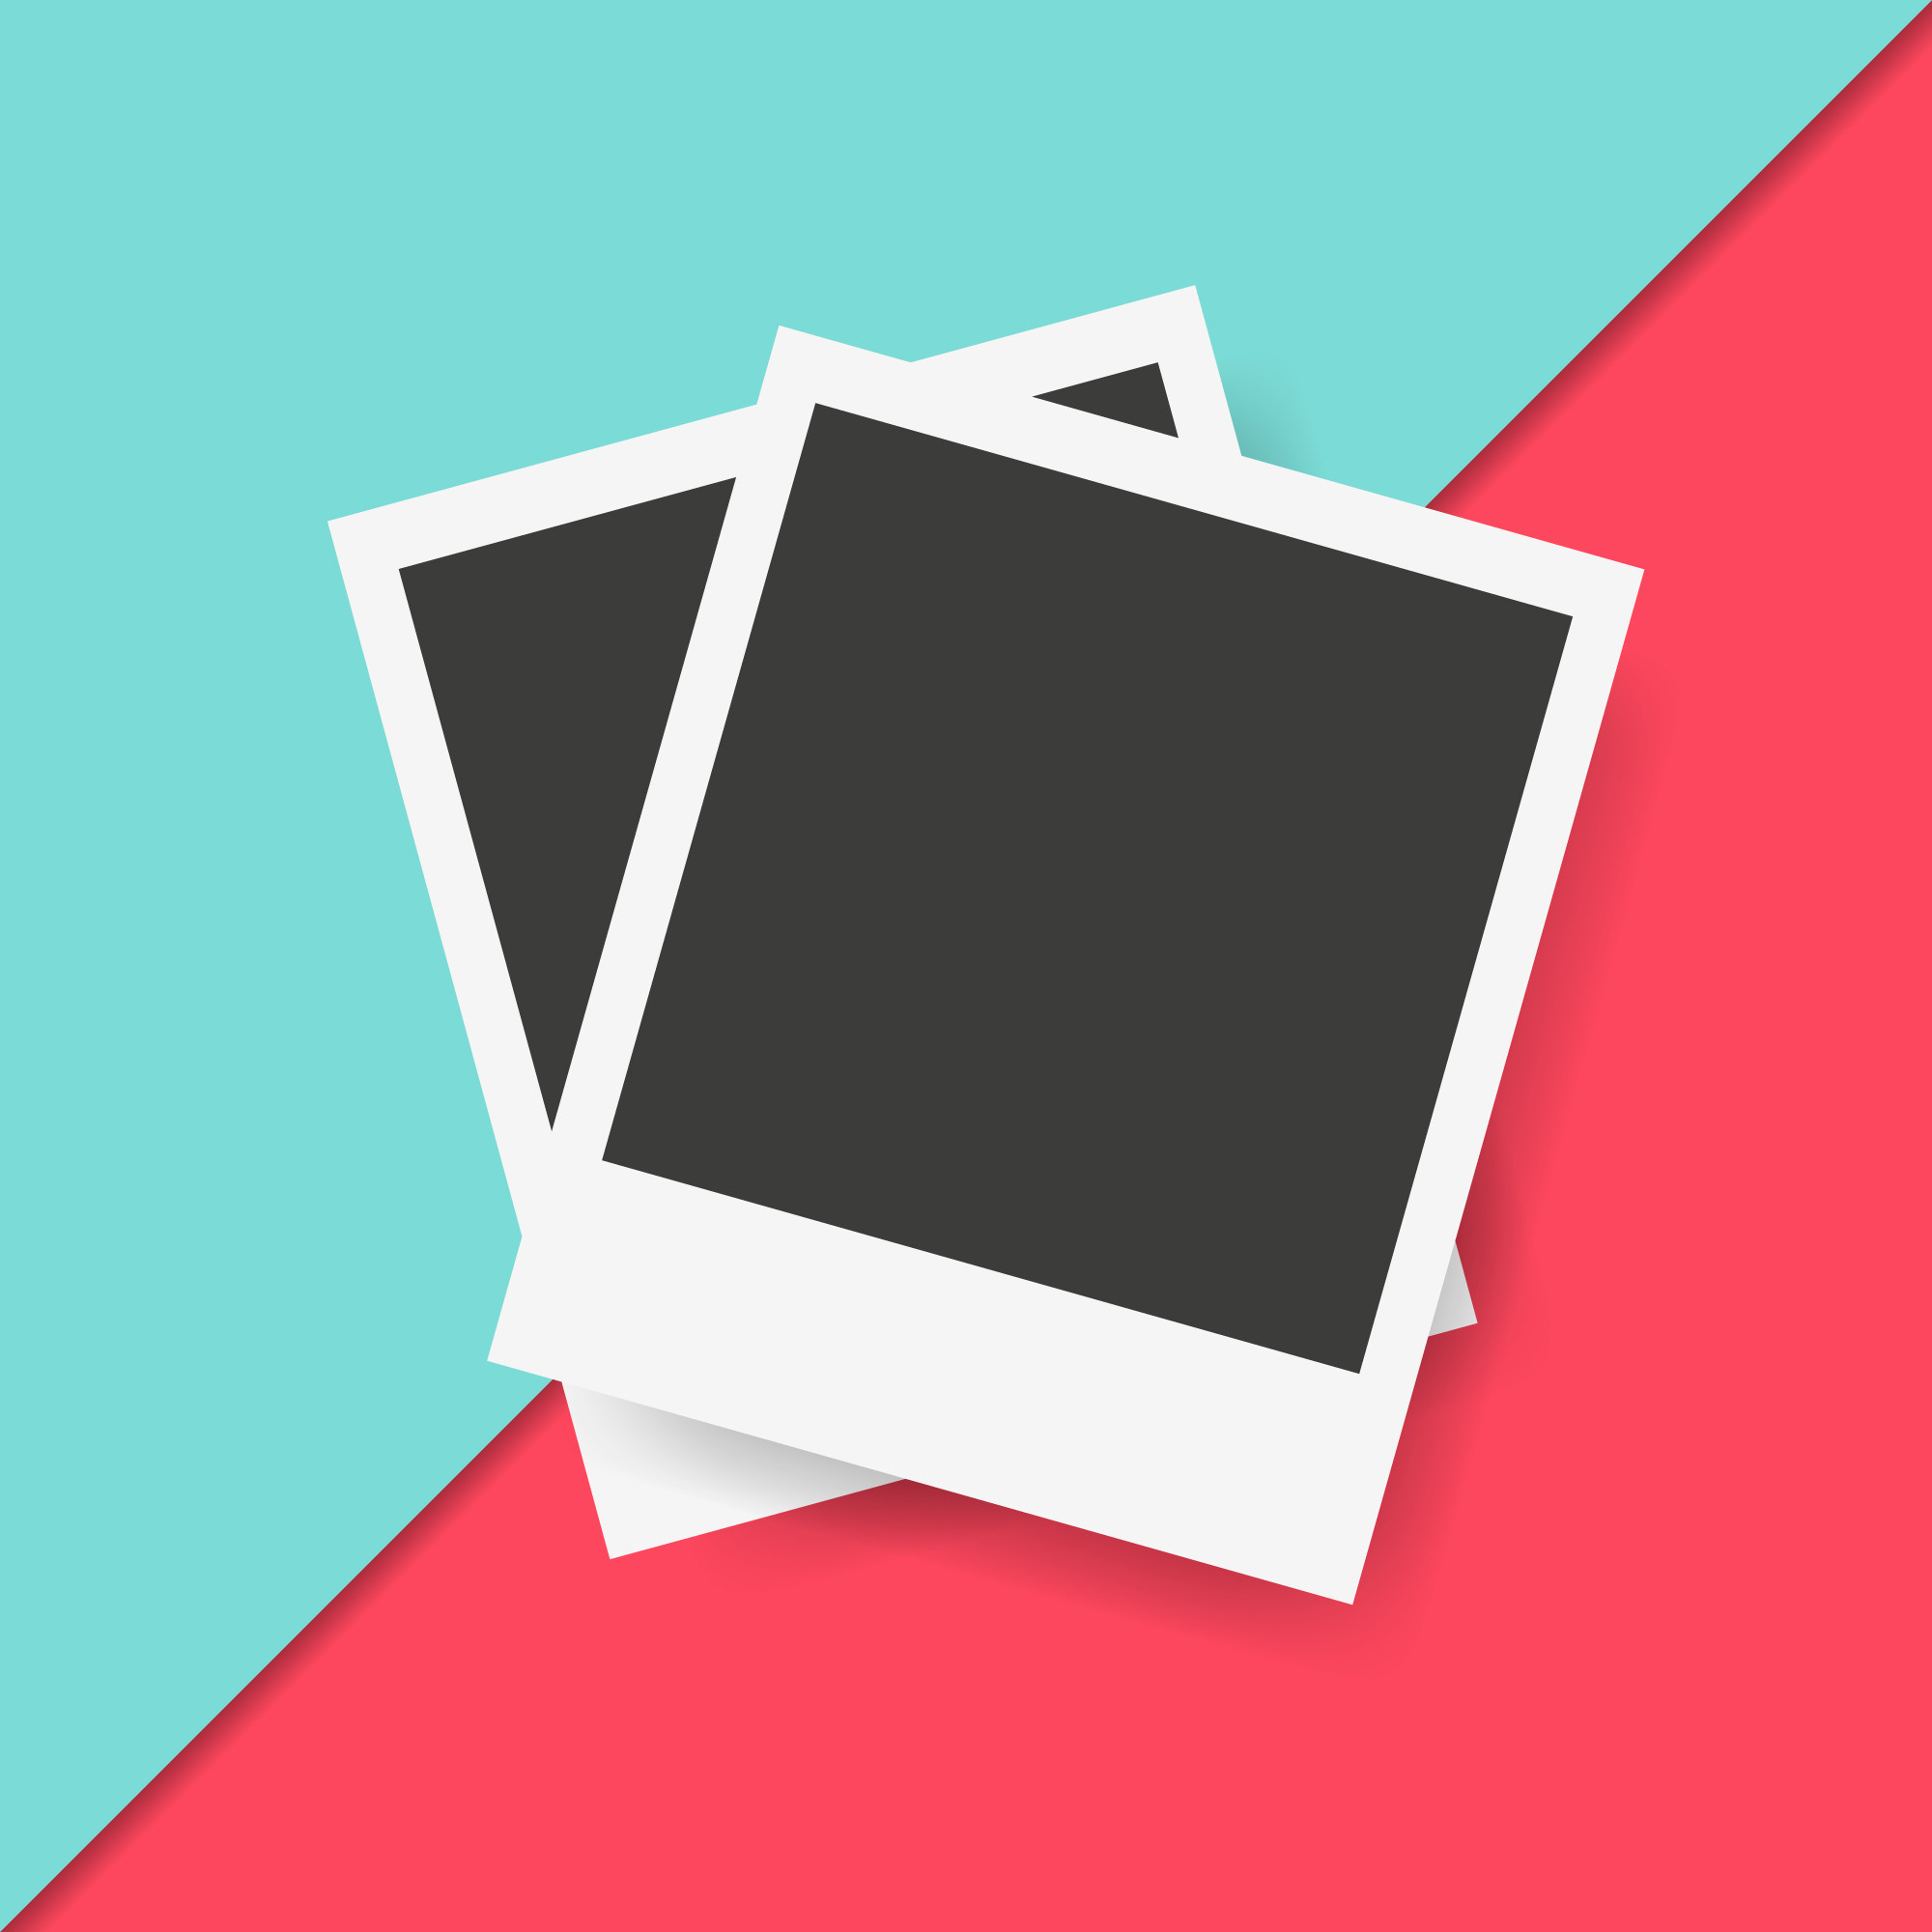 Polaroid Frames in Colorful Background